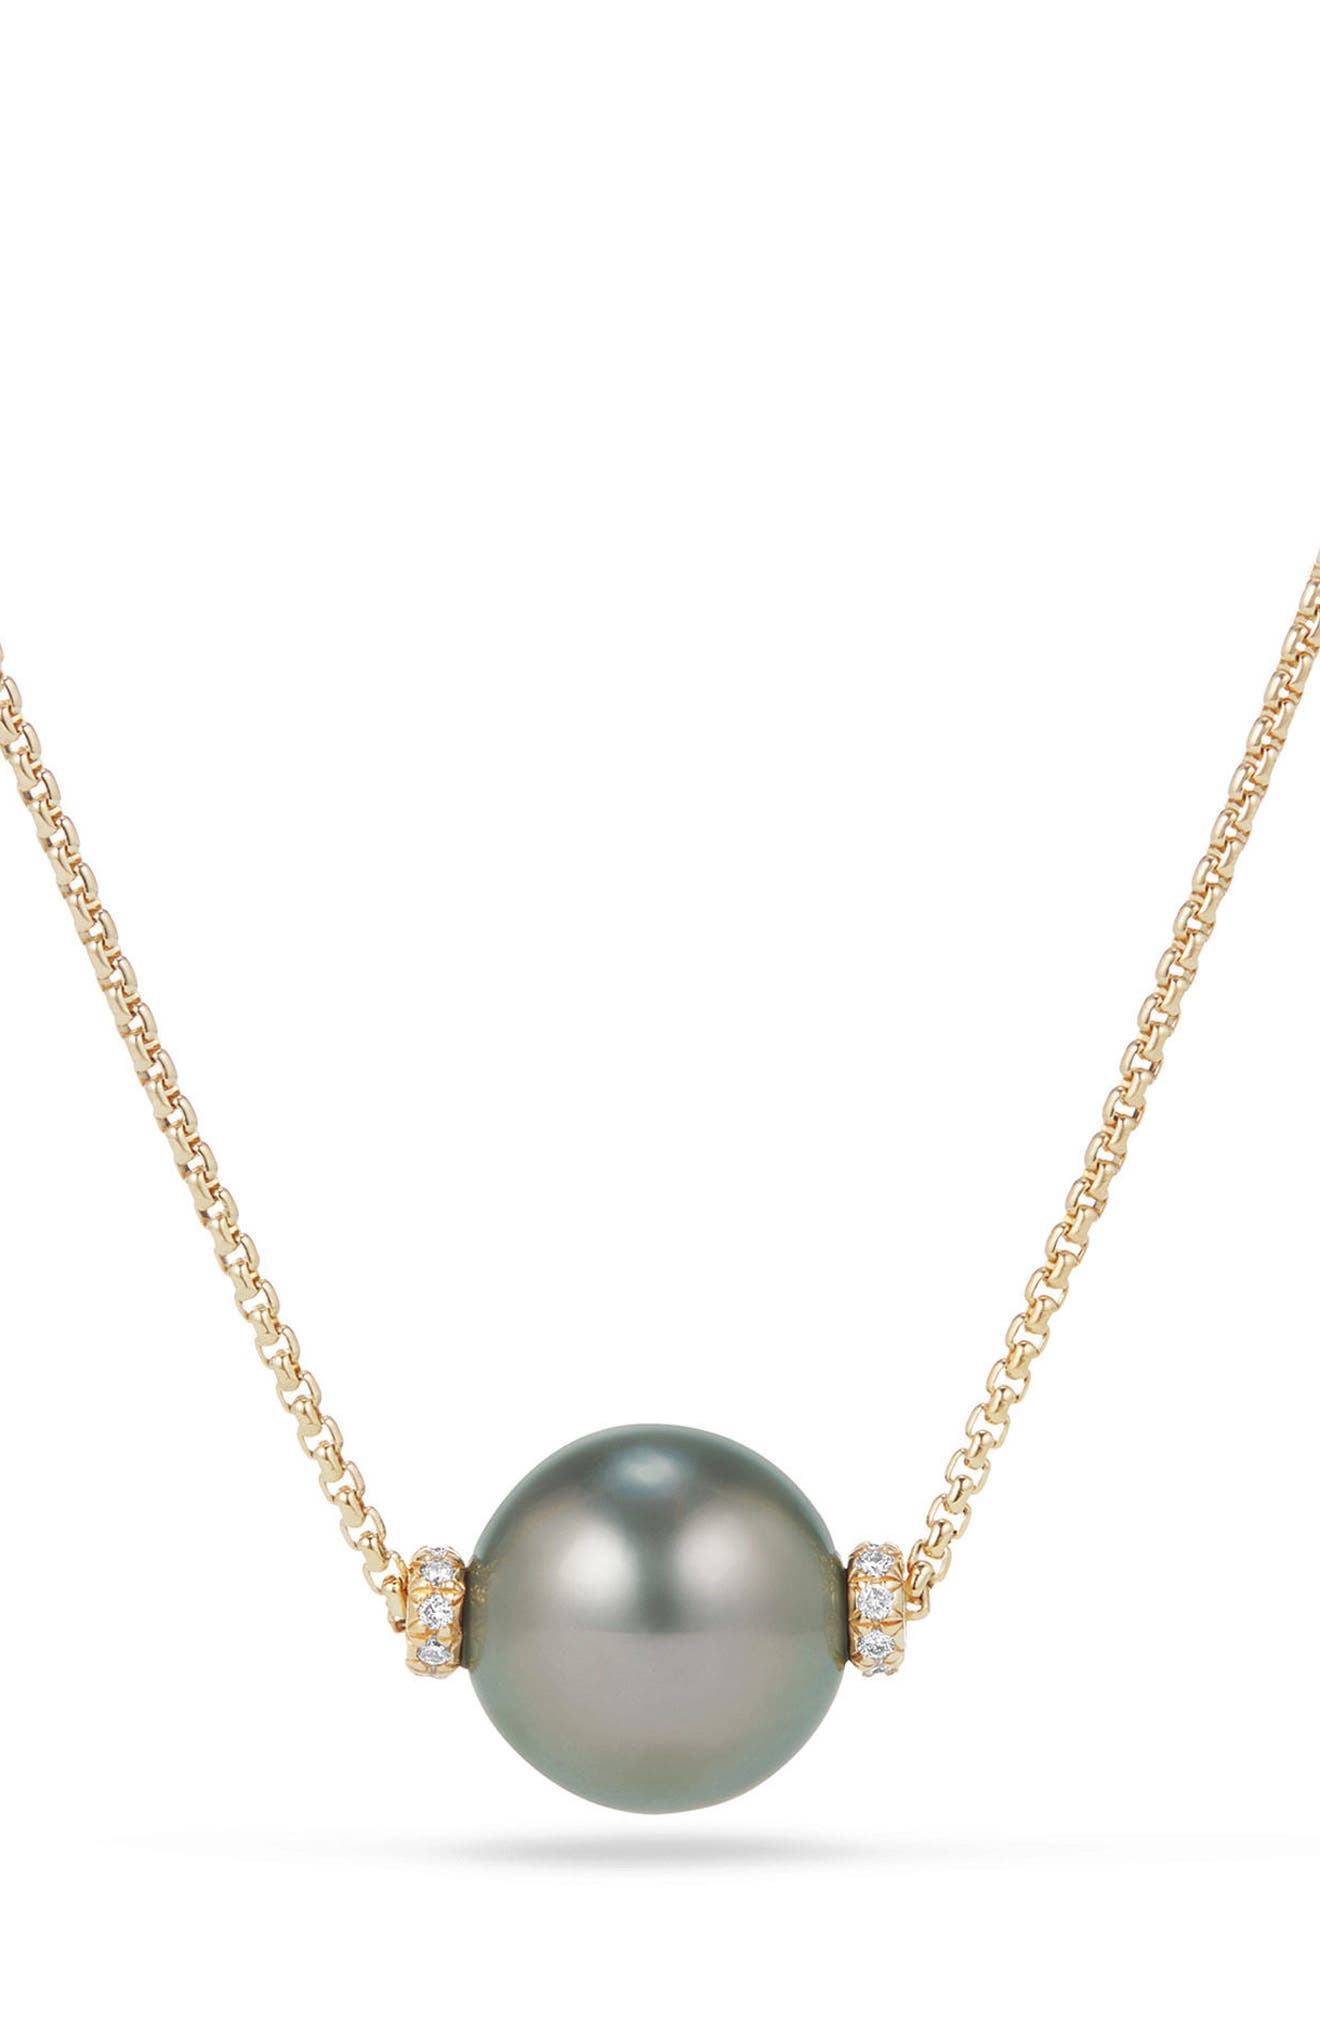 Main Image - David Yurman Solari Pearl Station Necklace